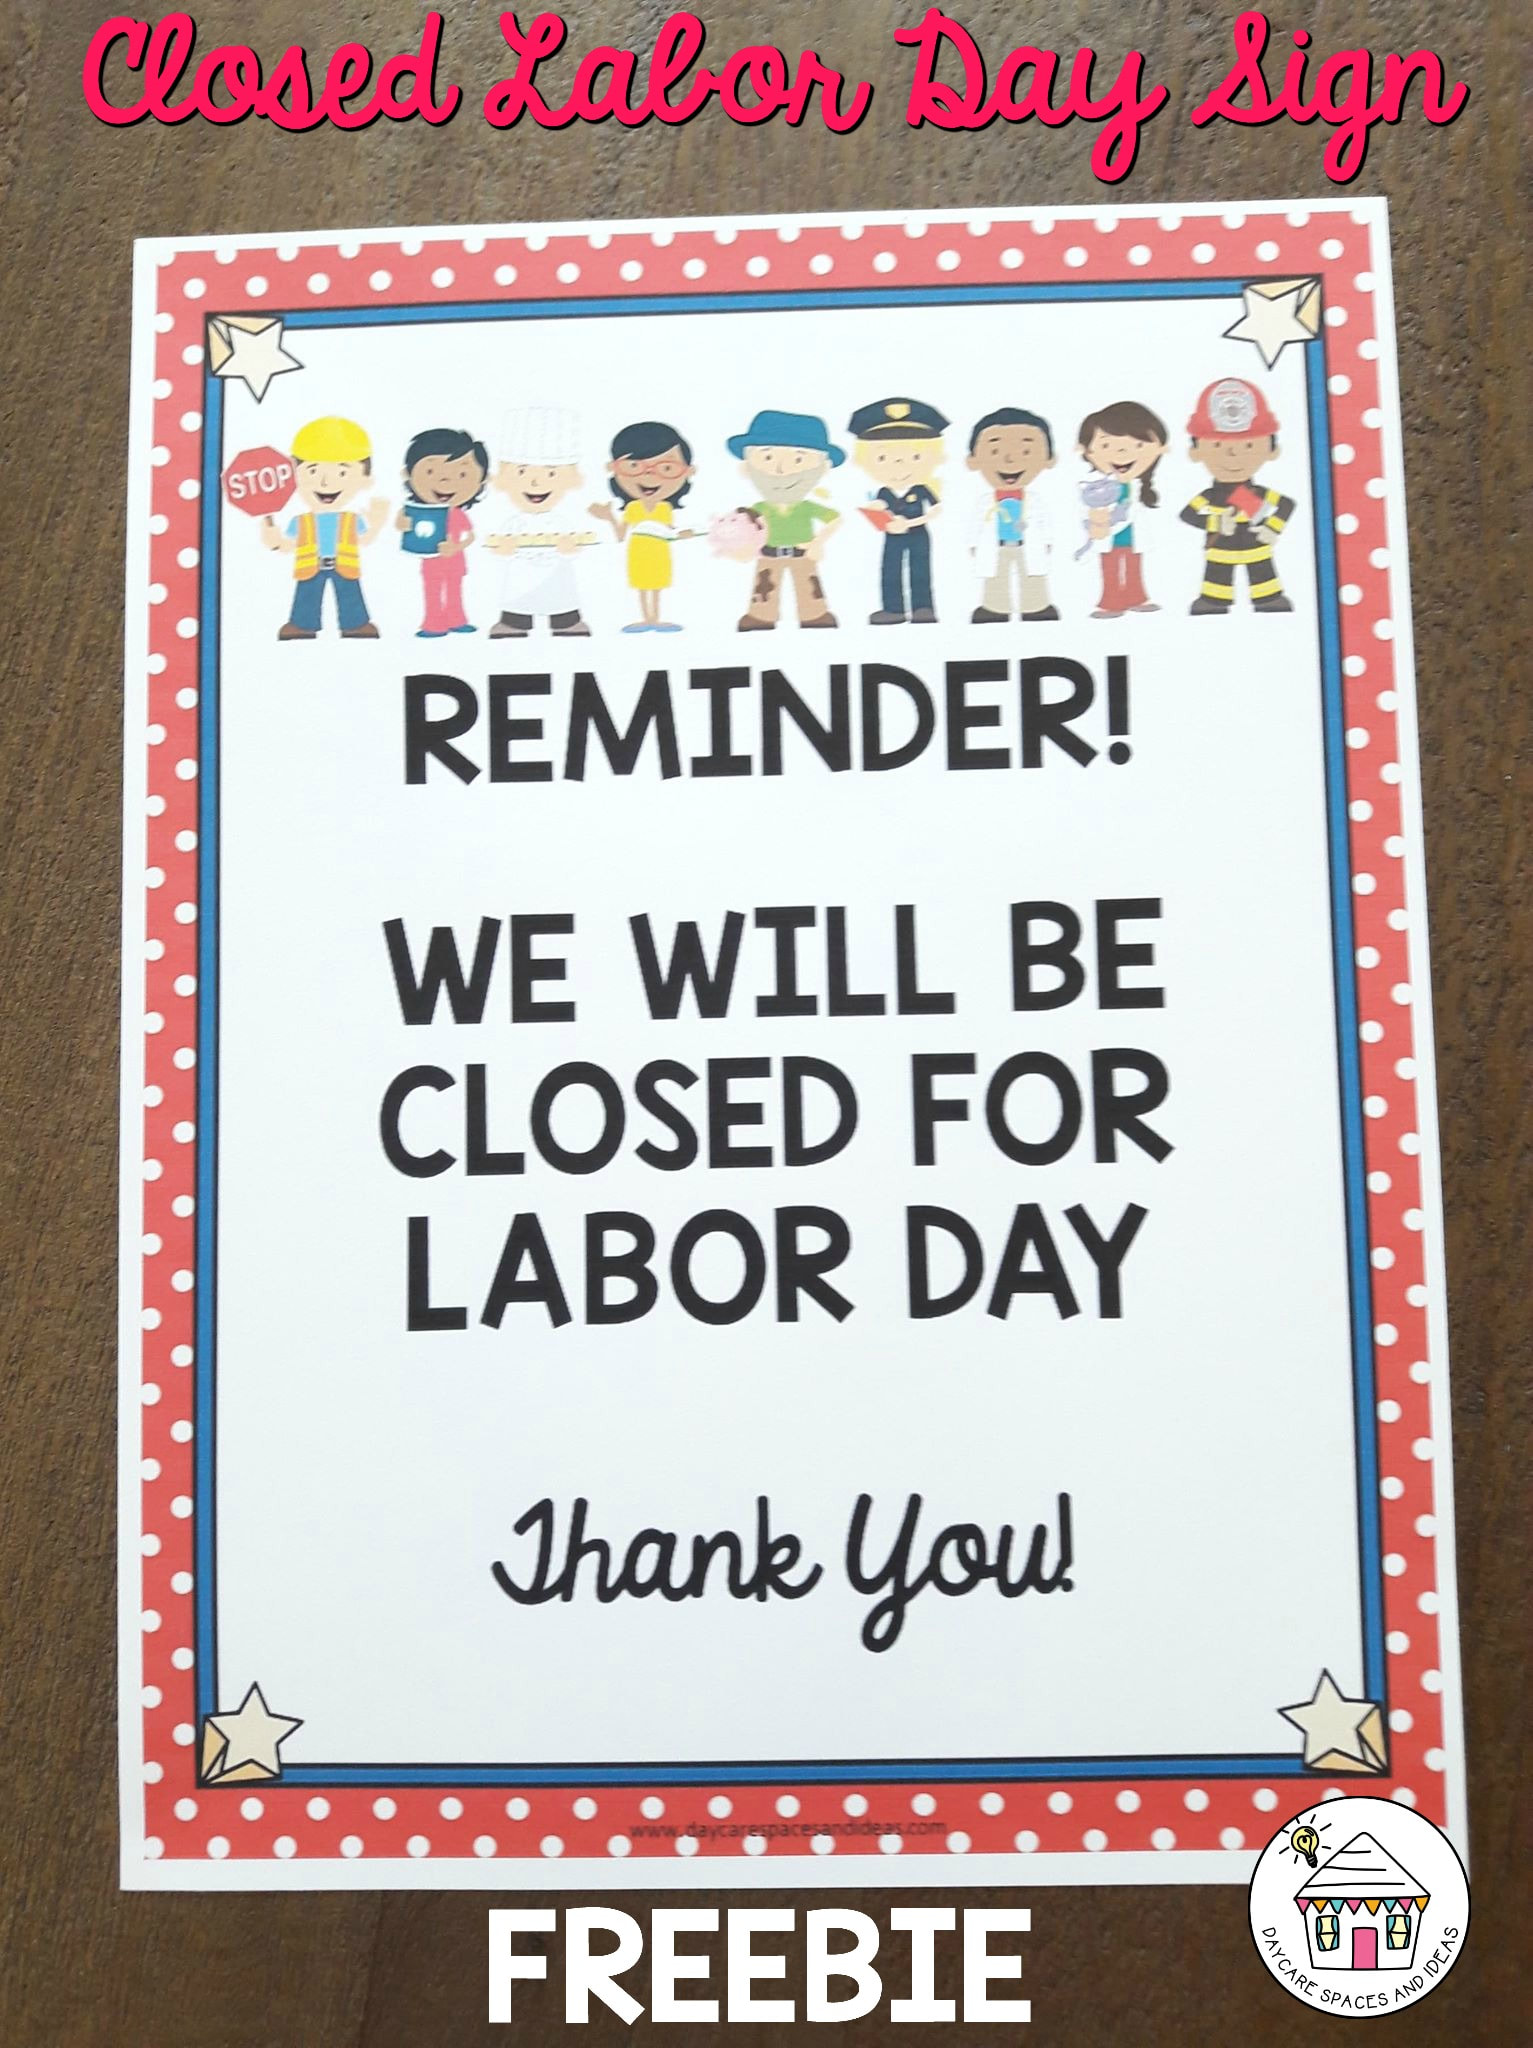 Simplicity image with regard to closed for labor day printable sign